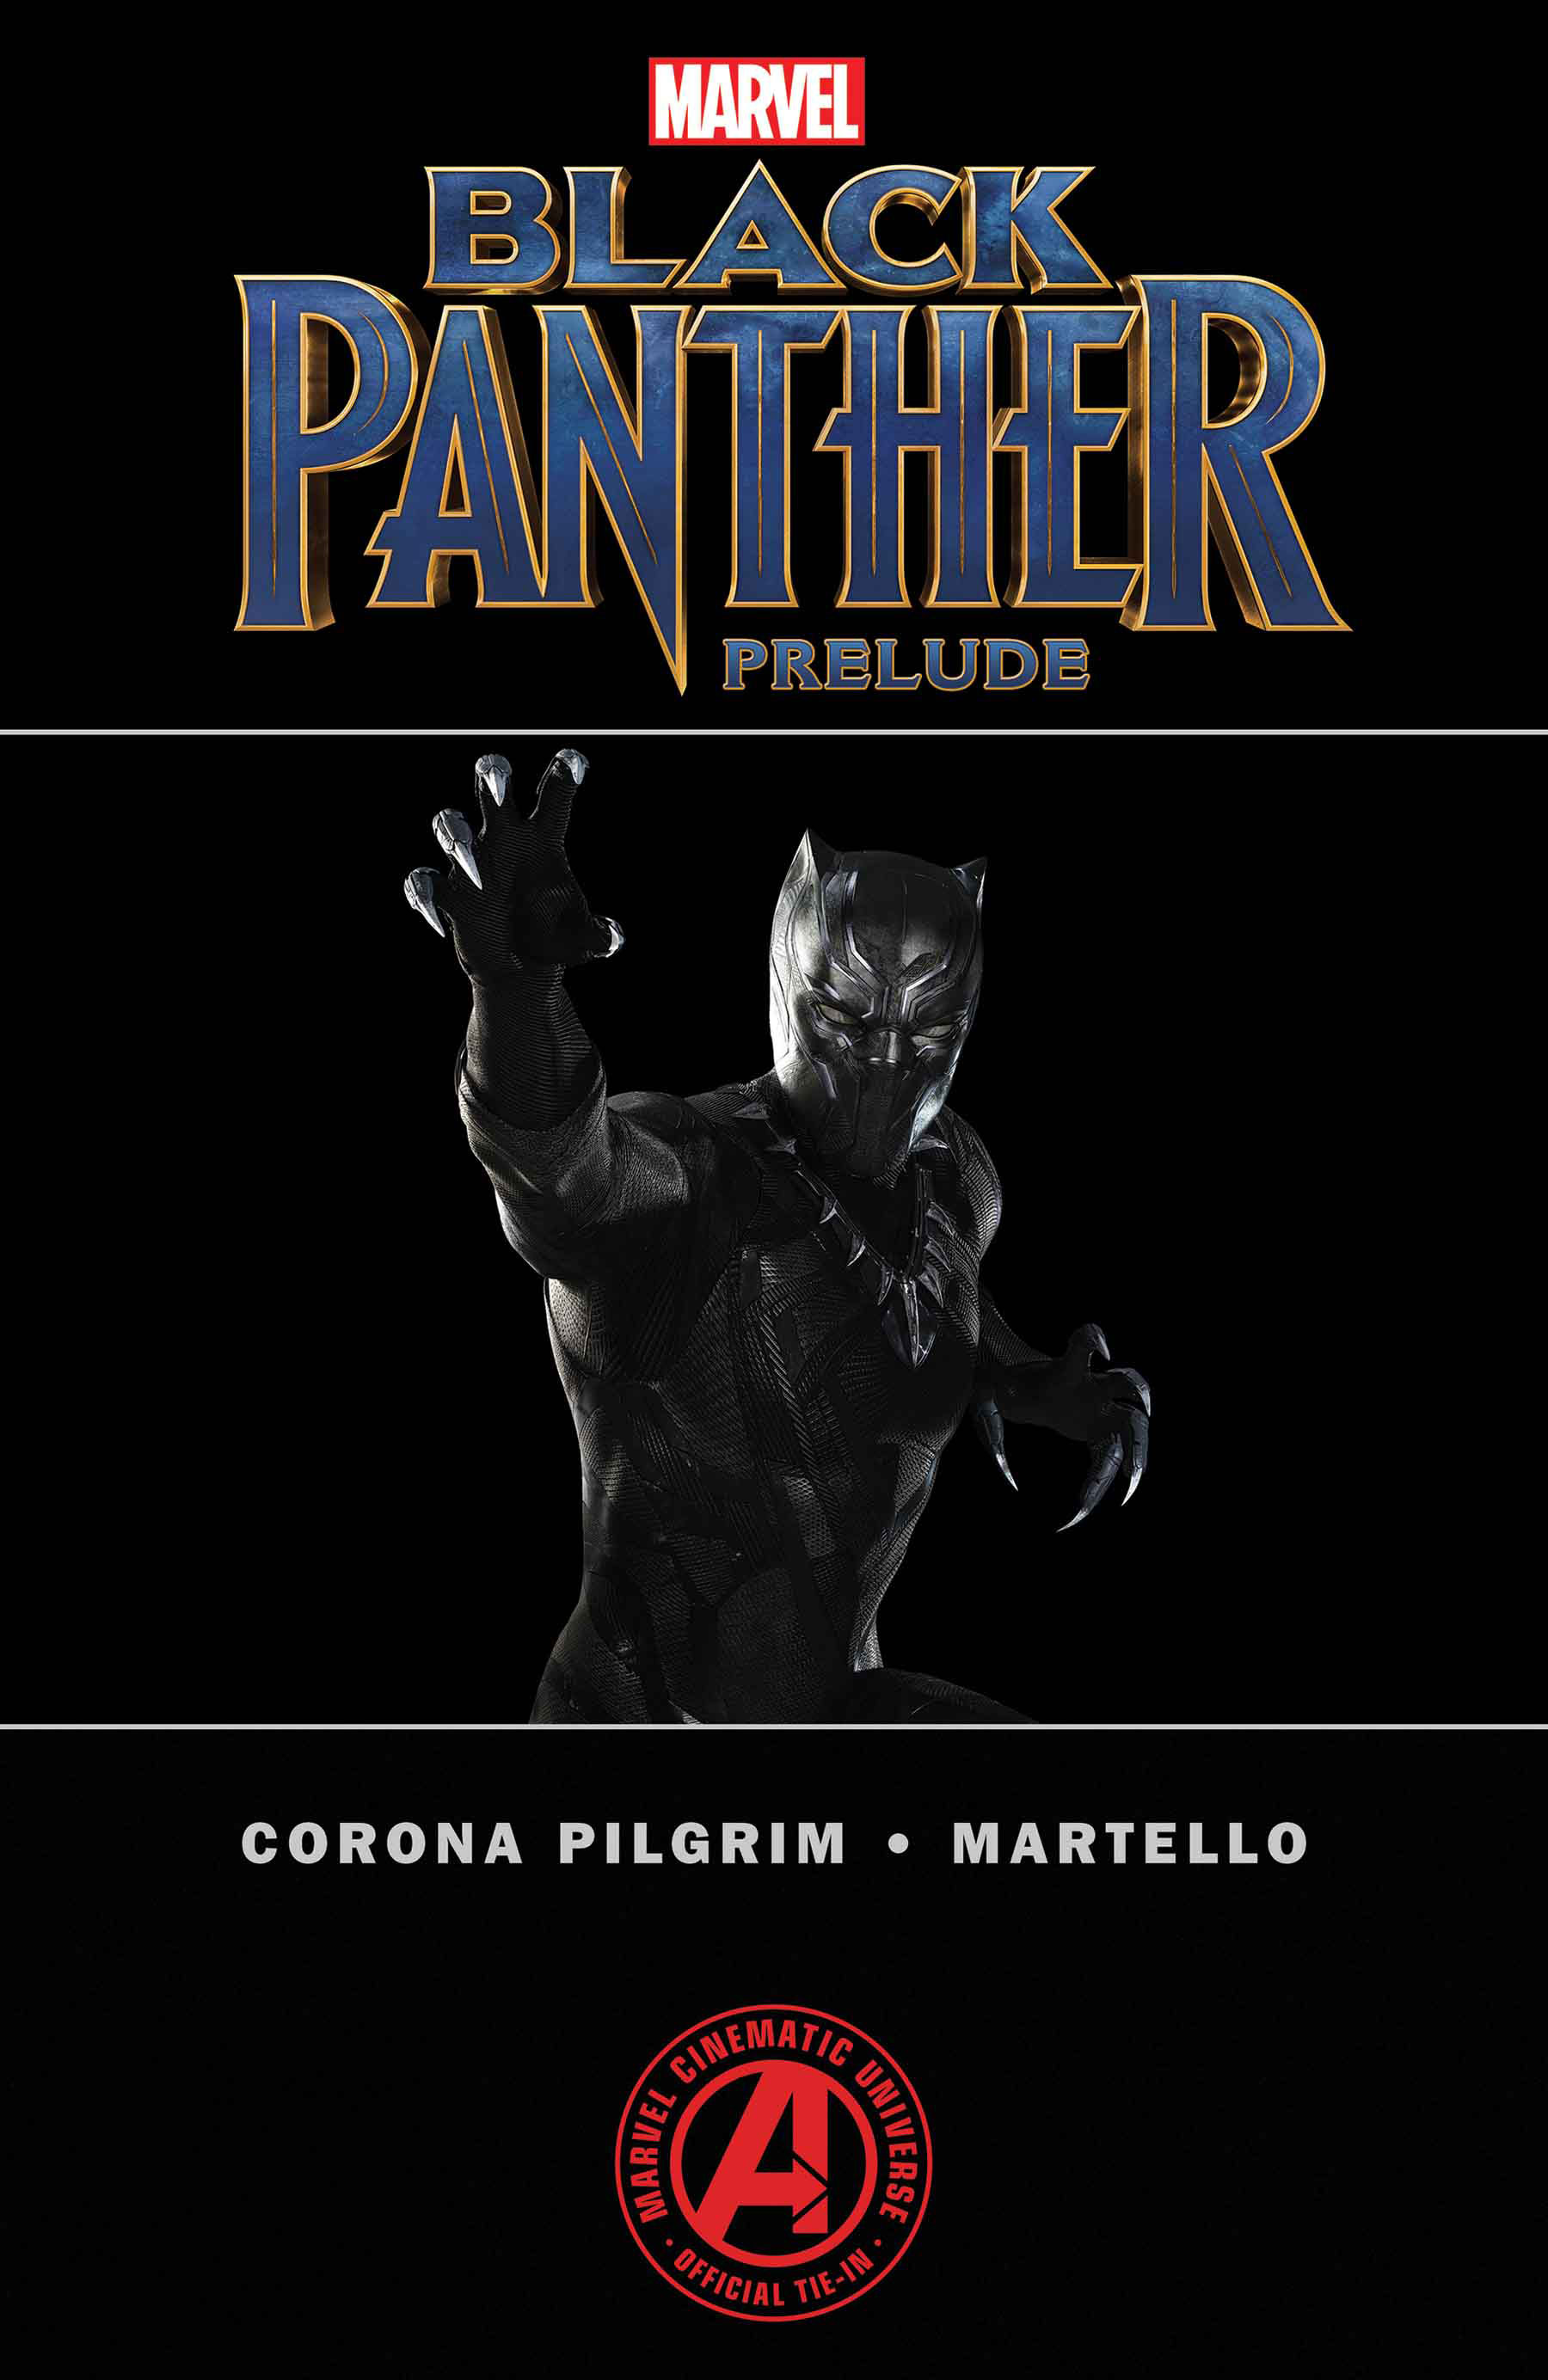 MARVEL'S BLACK PANTHER PRELUDE #1 (of 2)